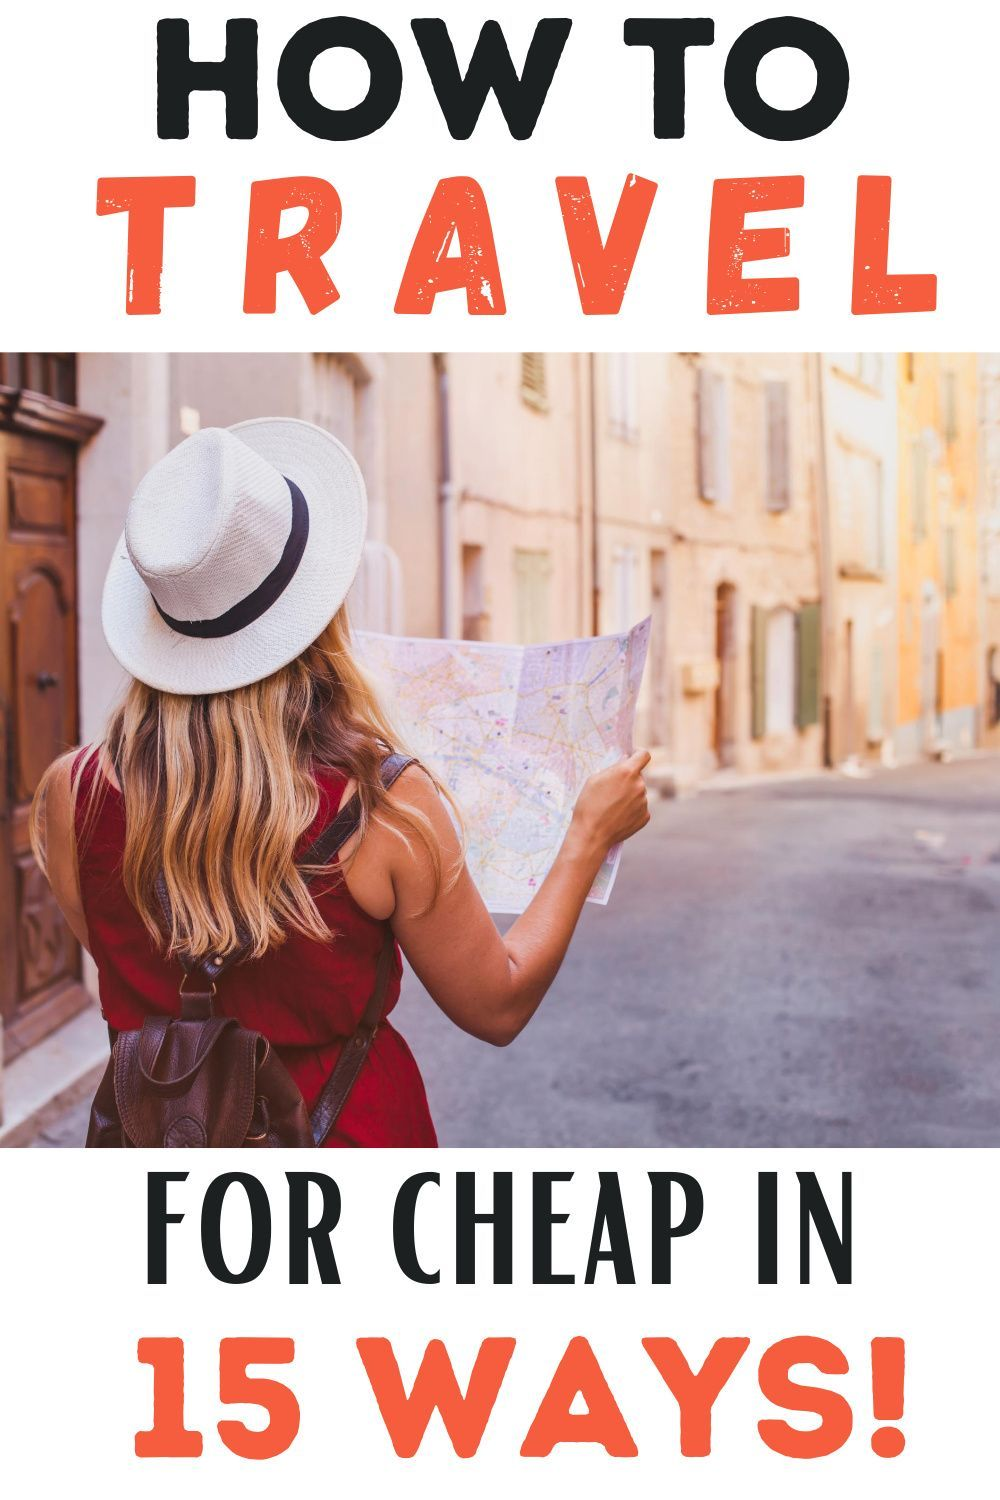 Traveling can be sooo expensive! But it doesn't need to be! Here are 15 real ways to save money traveling so that you can travel more often! #travel #traveling #traveldeals #travelhack #howtotravel #travelingforcheap #cheaptravel #discounttravel #wheretotravel #travelideas #traveltips